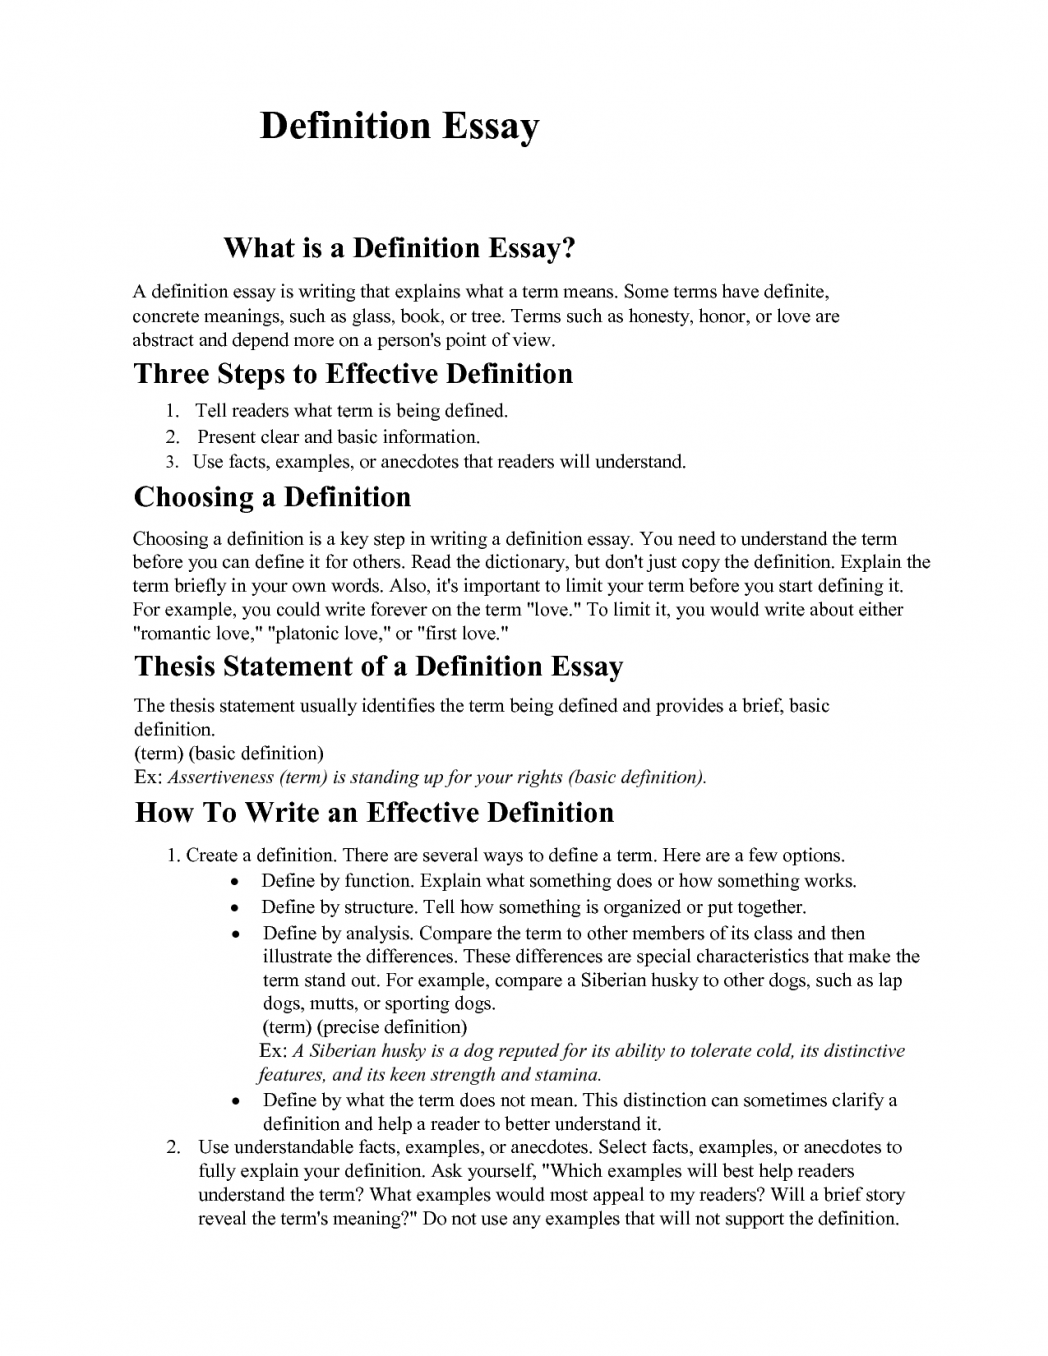 008 Definition Essay Outline Example Examples Friendship Writing Topics For An Define Academic Collection Of Solutions Success Creative And Pdf Argumentative Phenomenal Sample Extended Full